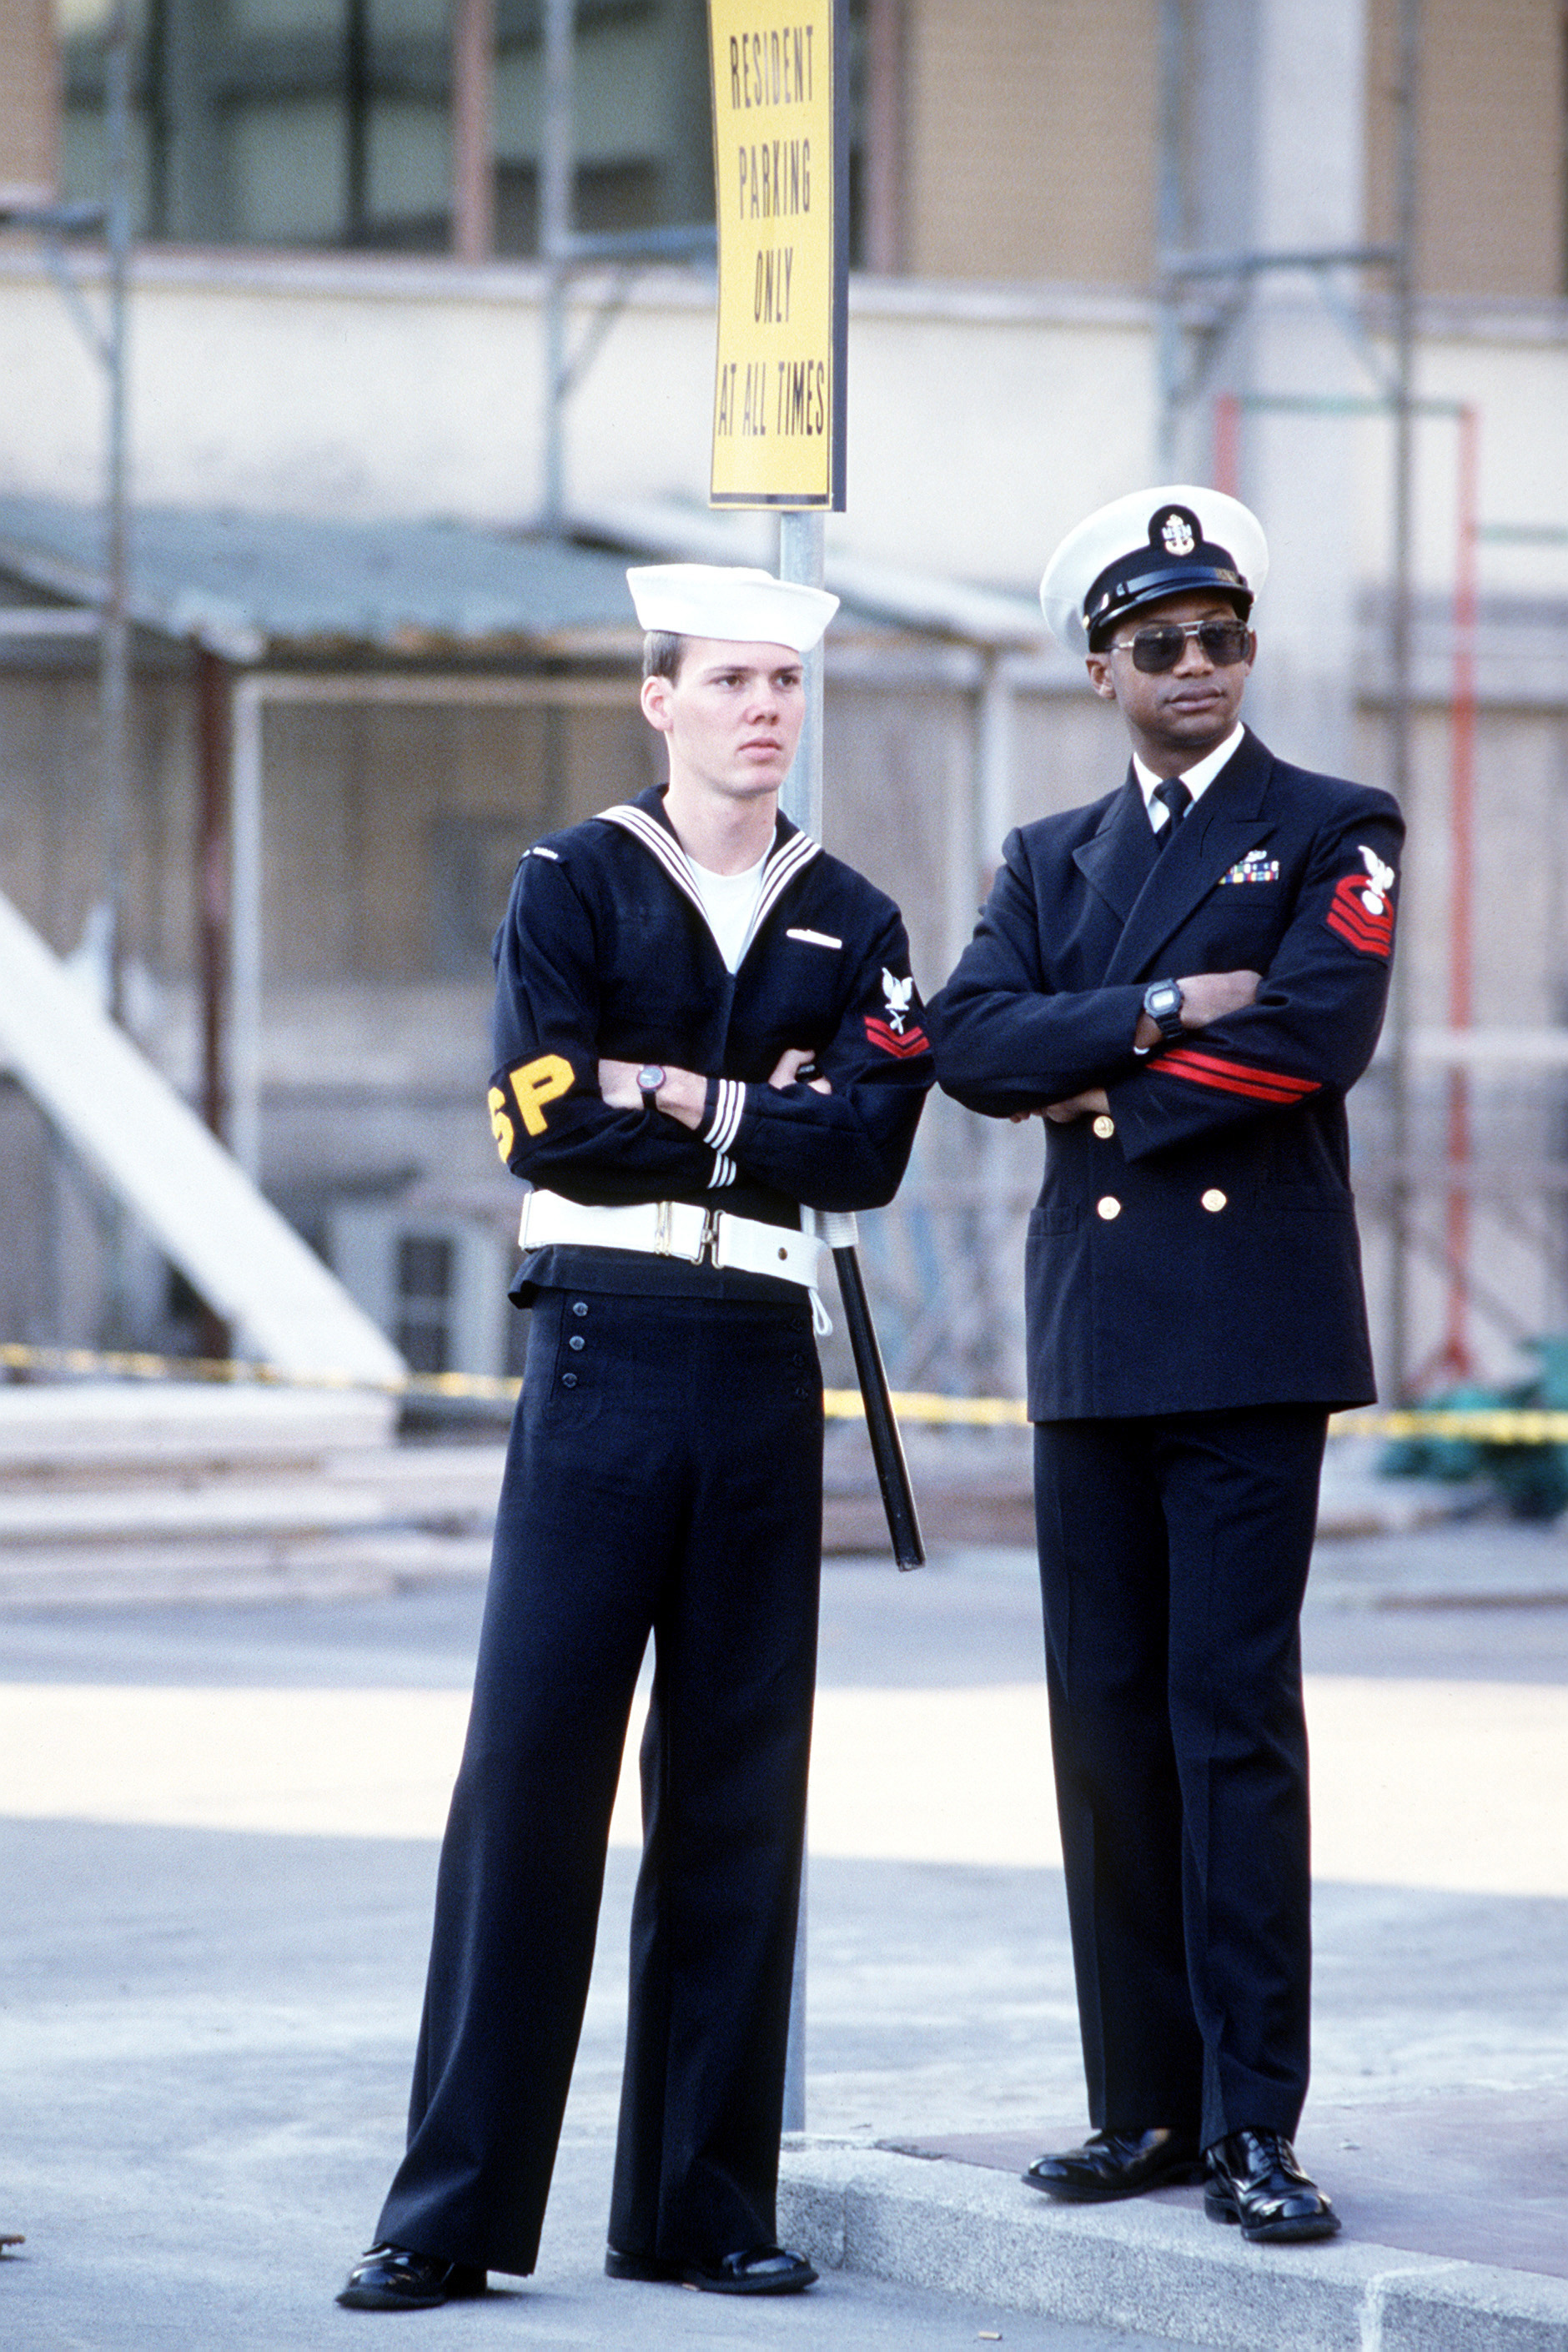 A chief petty officer (CPO) stands beside a sailor on shore patrol duty to watch a performance by the 6th Fleet Band, the